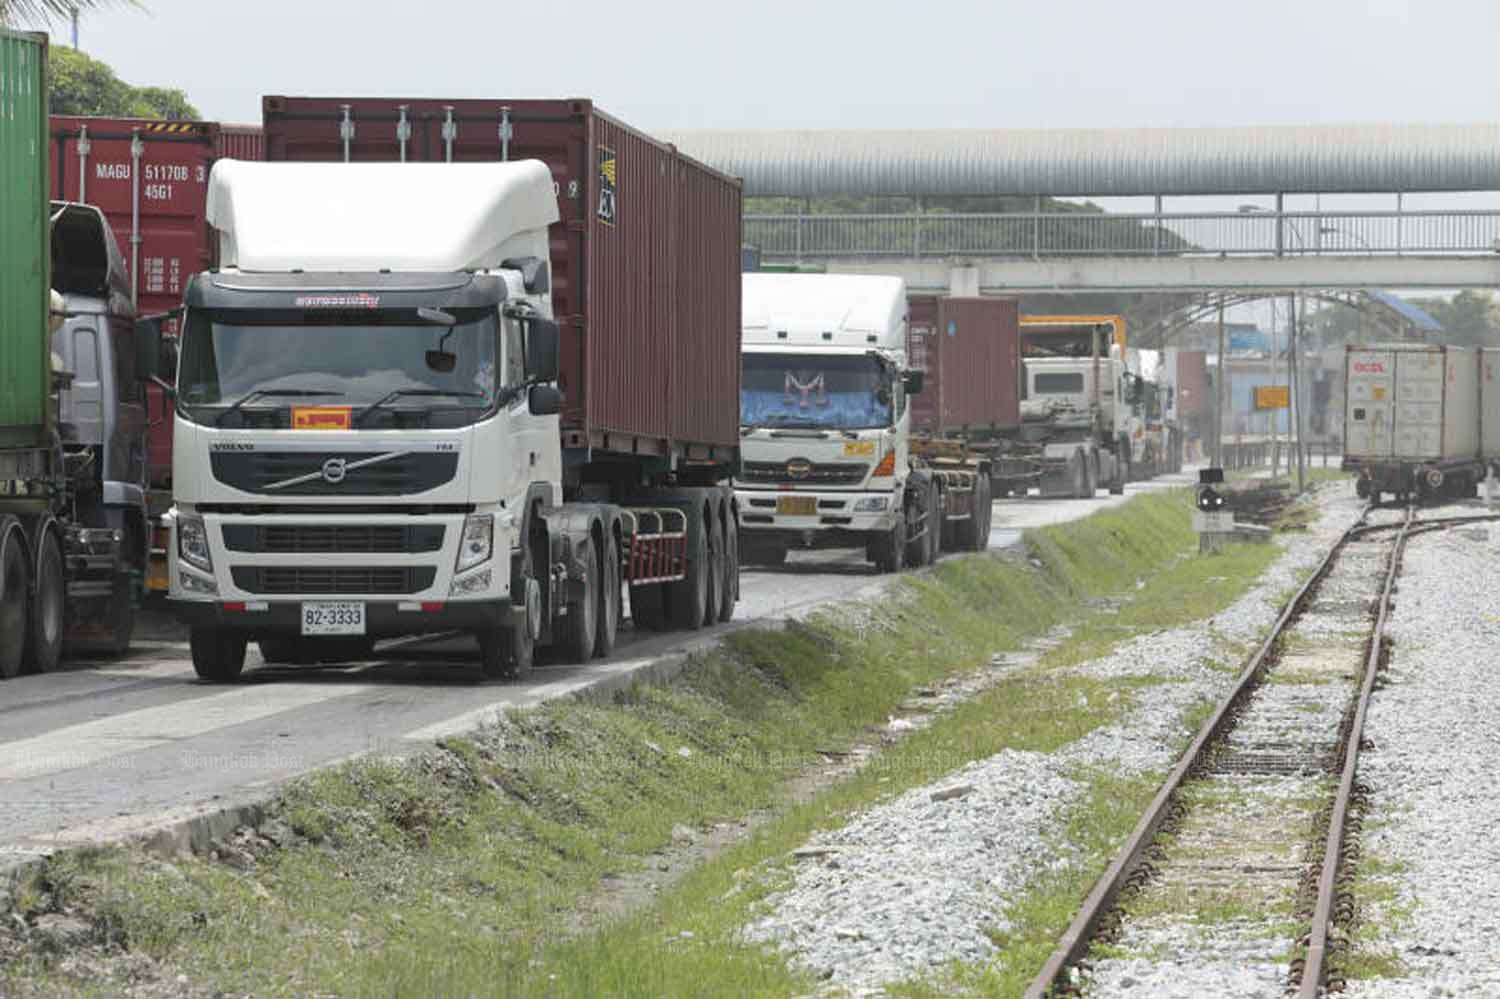 Trucks carry exports near the State Railway of Thailand's station at Padang Besar on the border with Malaysia. Thailand is a major agricultural producer for many countries around the globe. (Bangkok Post file photo)